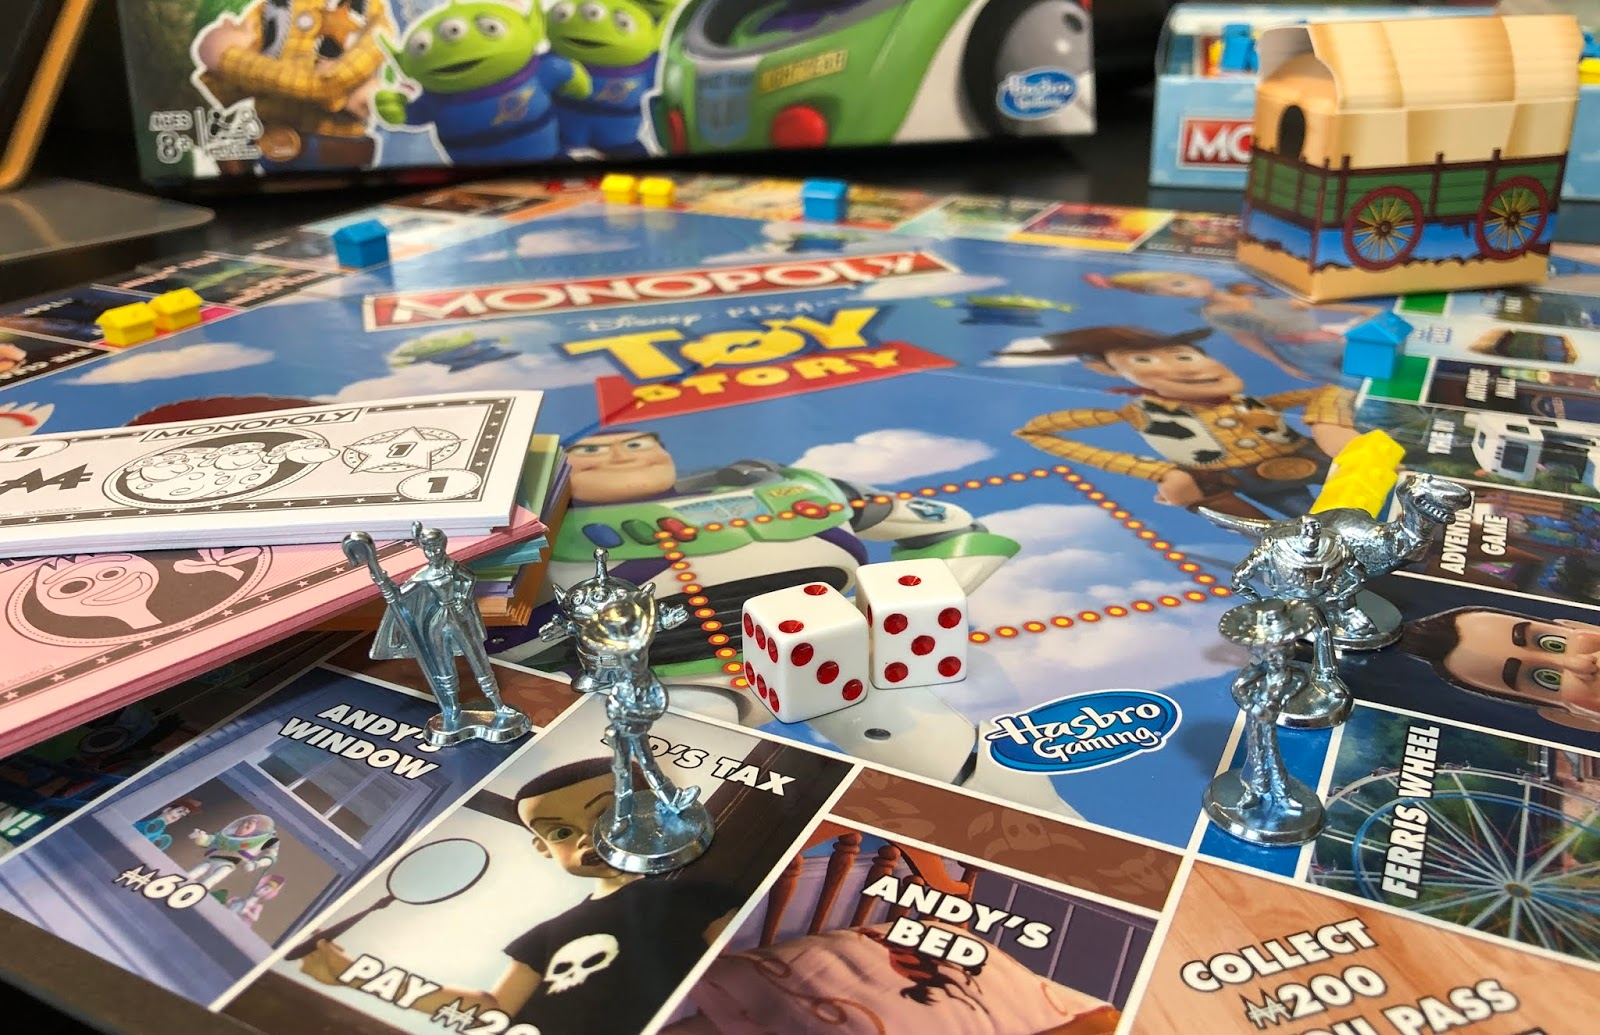 b2b95c0cbc8 Toy Story Monopoly Board Game Unboxing - Watch Out For Sid or Benson  (Covers Toy